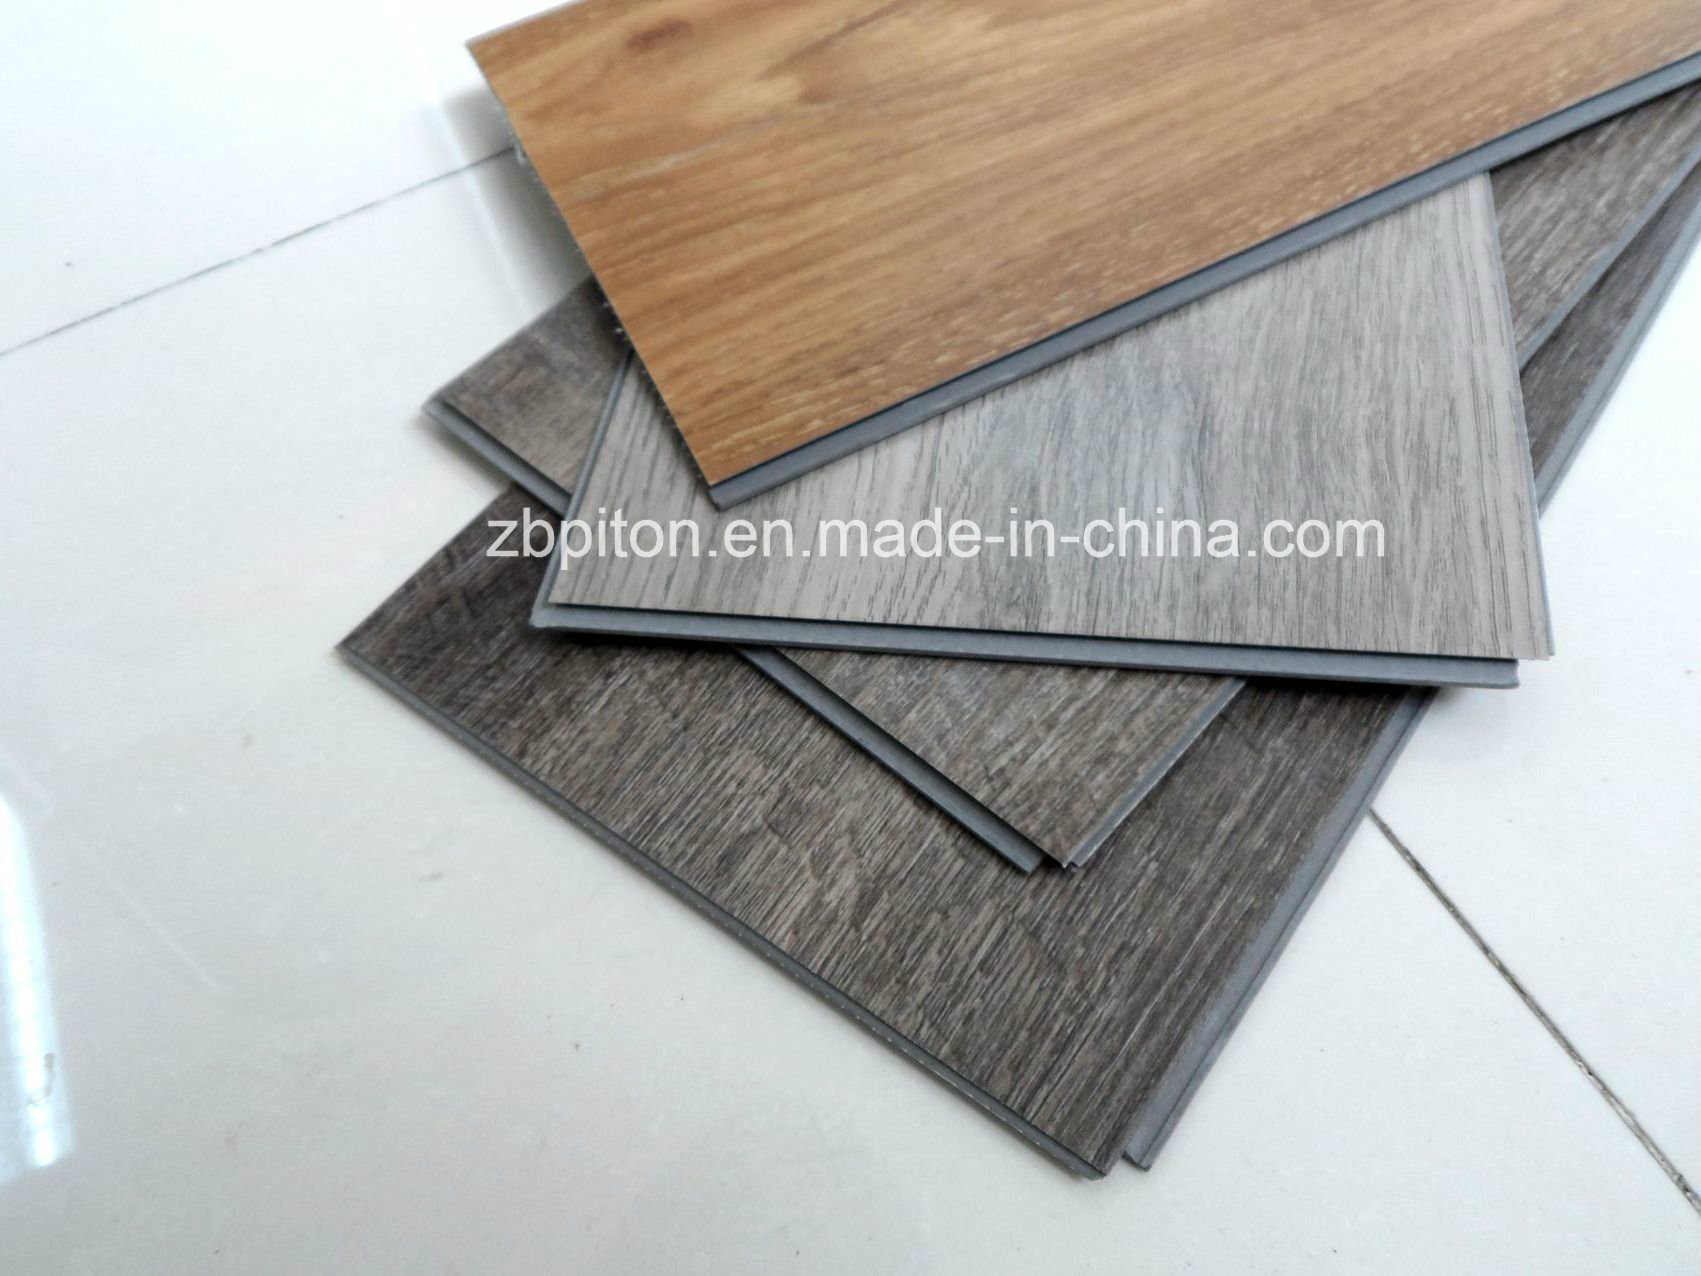 china interlocking pvc vinyl flooring tile lvt vinyl. Black Bedroom Furniture Sets. Home Design Ideas